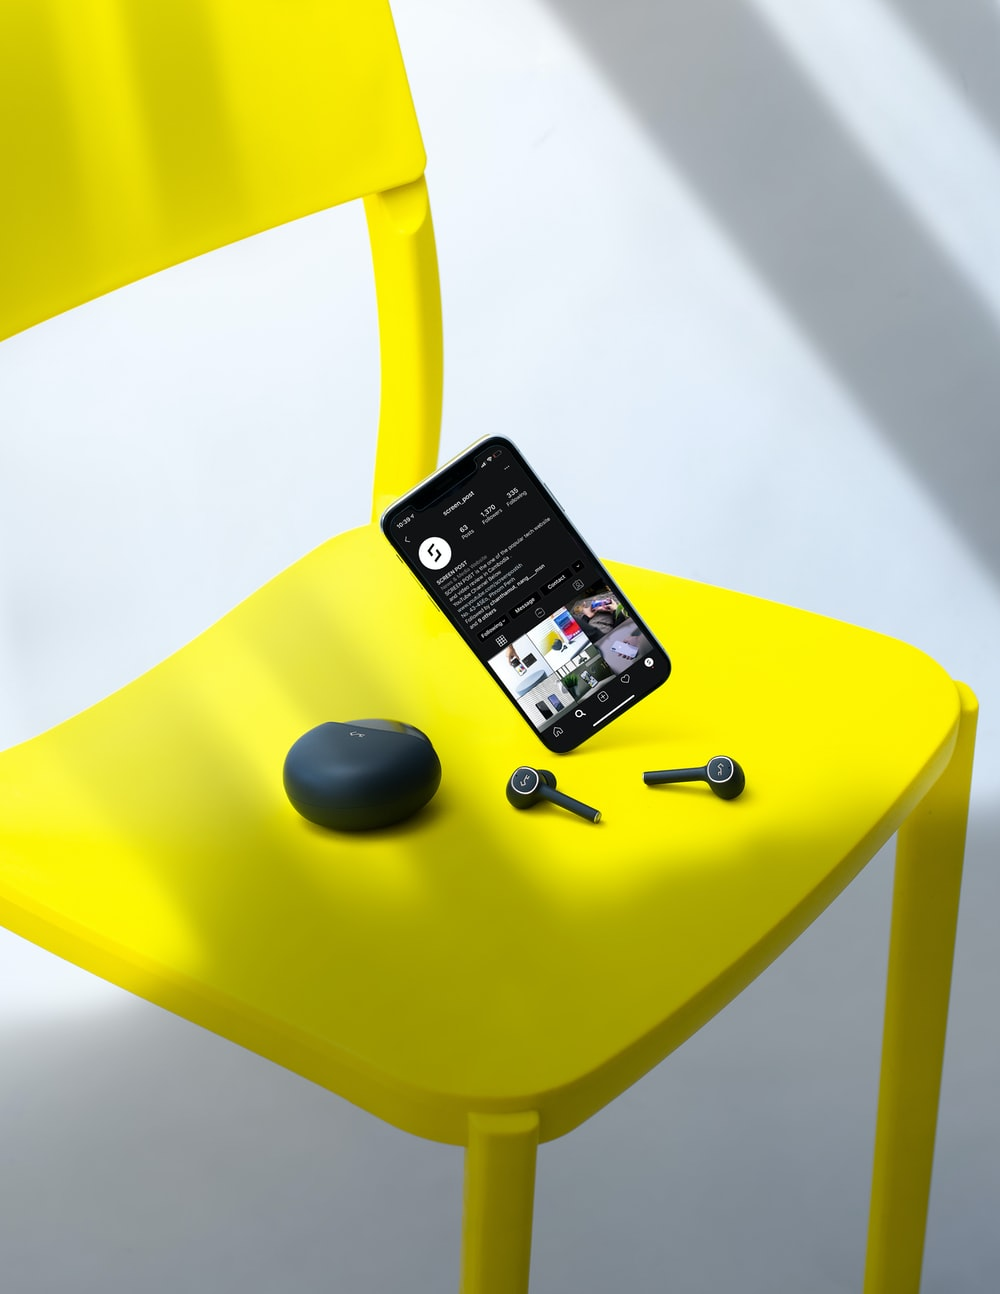 black iphone 4 on yellow chair